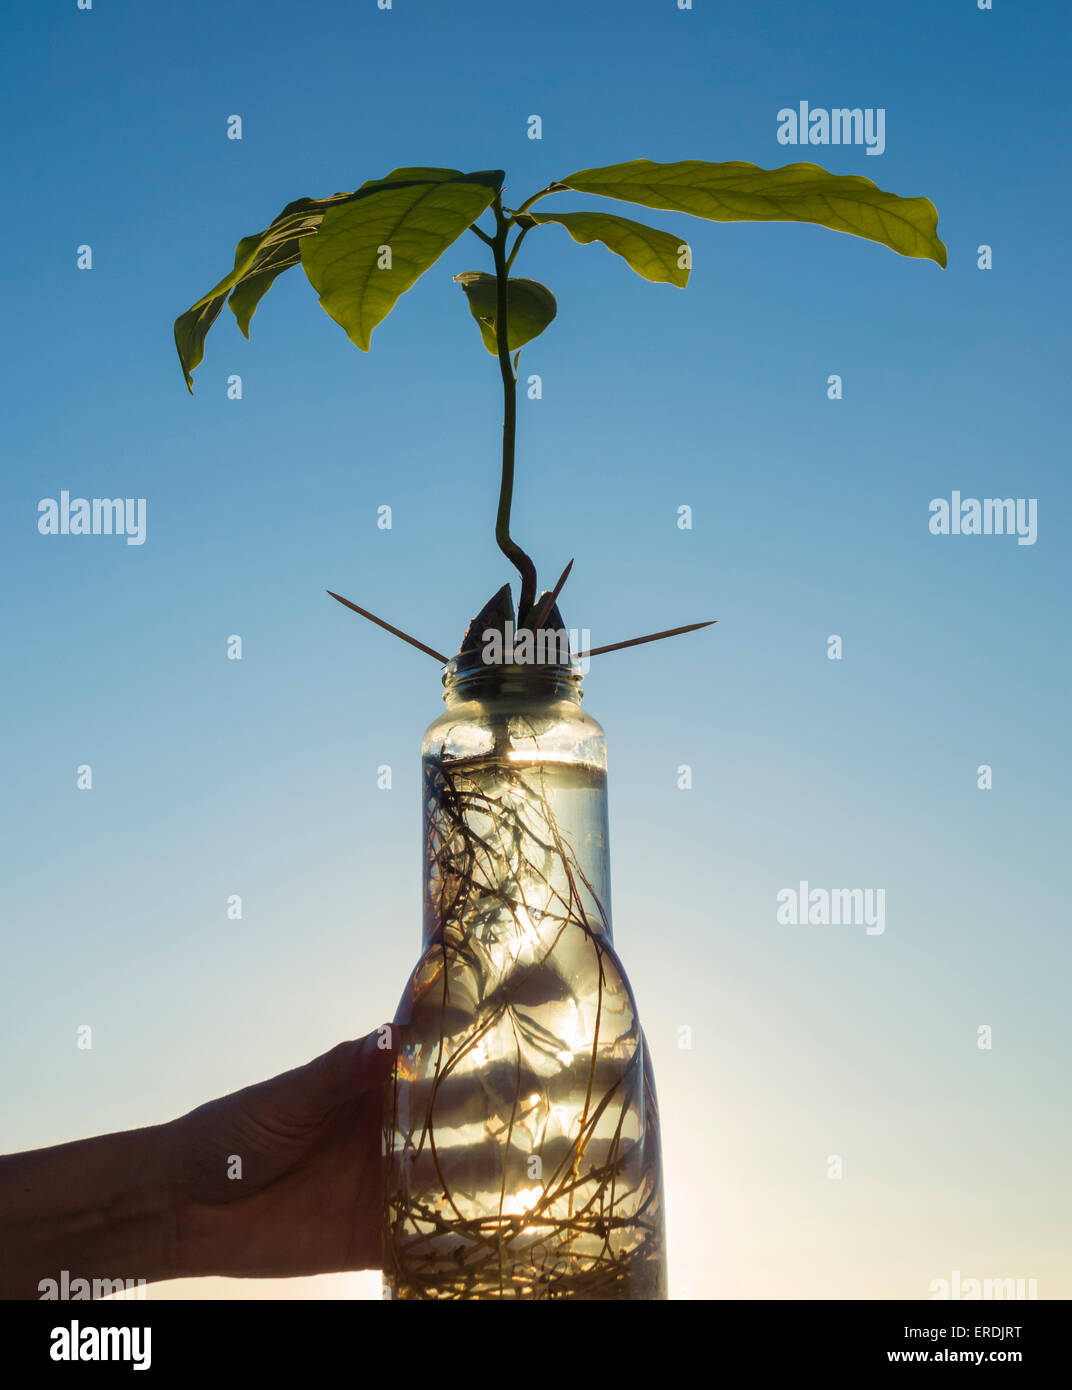 Avocado plant grown from stone in jar of water - Stock Image